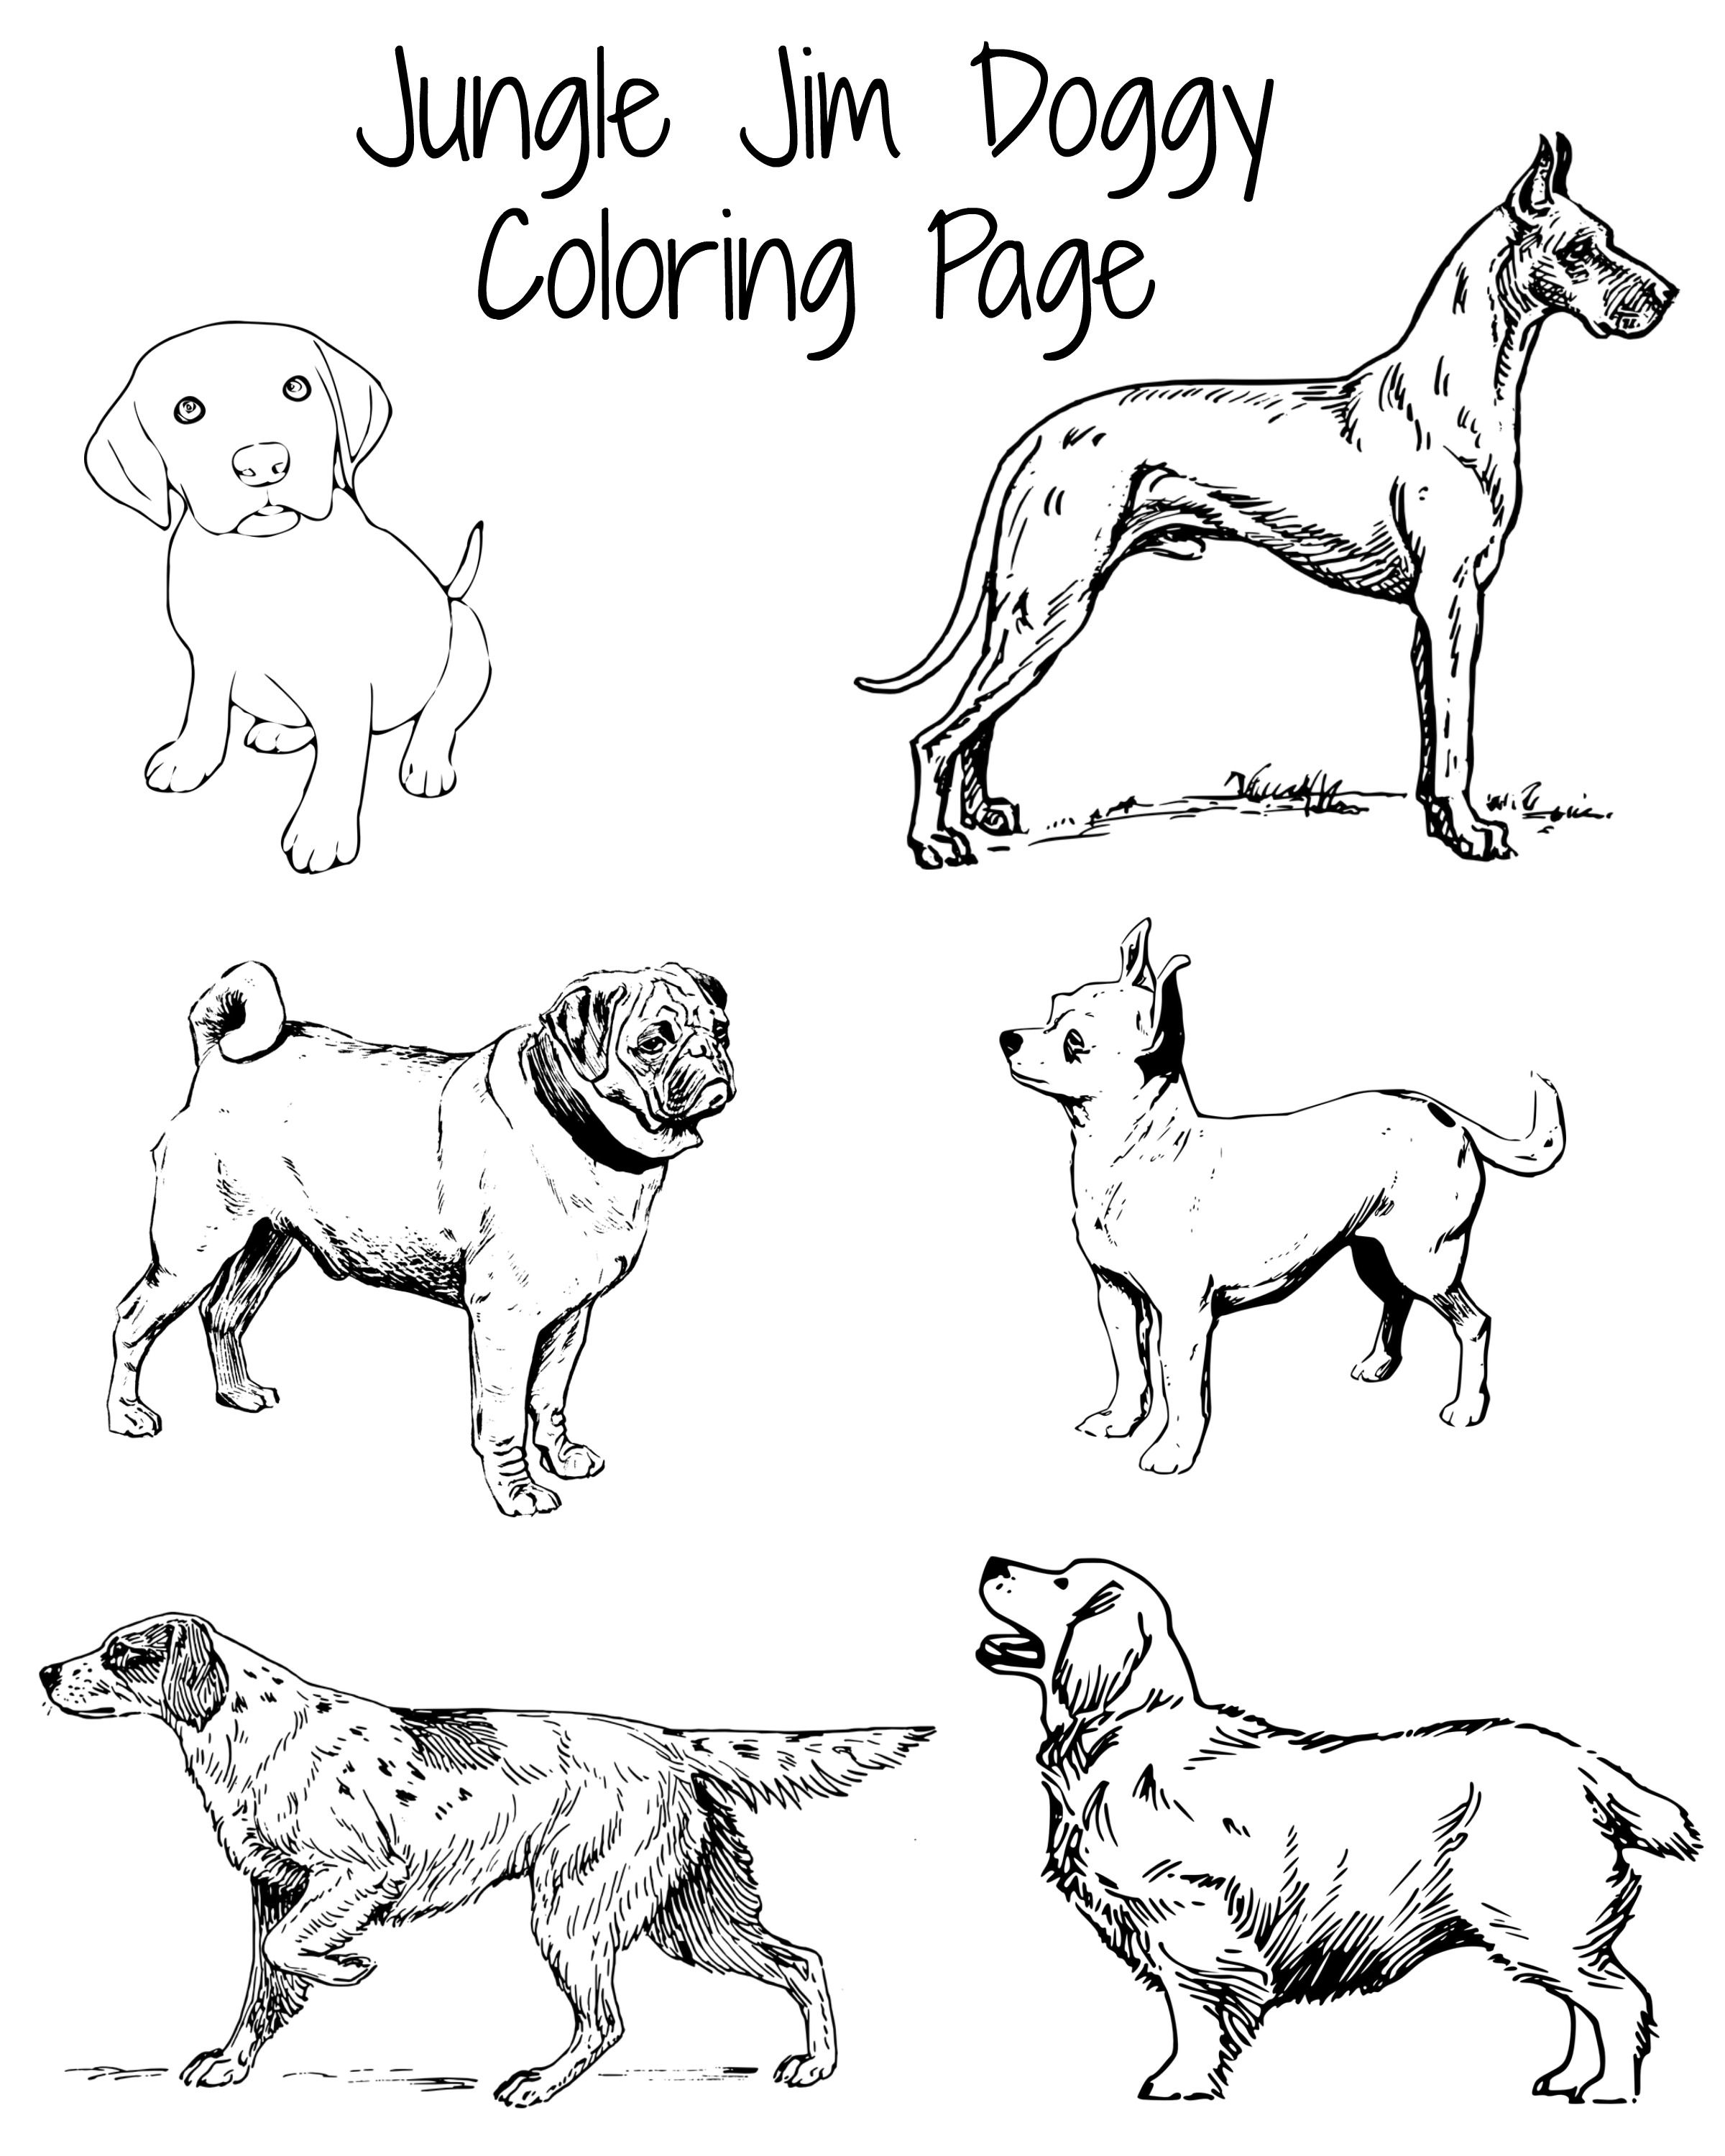 Doggy Coloring Page Perfect For The Dog Days Of Summer